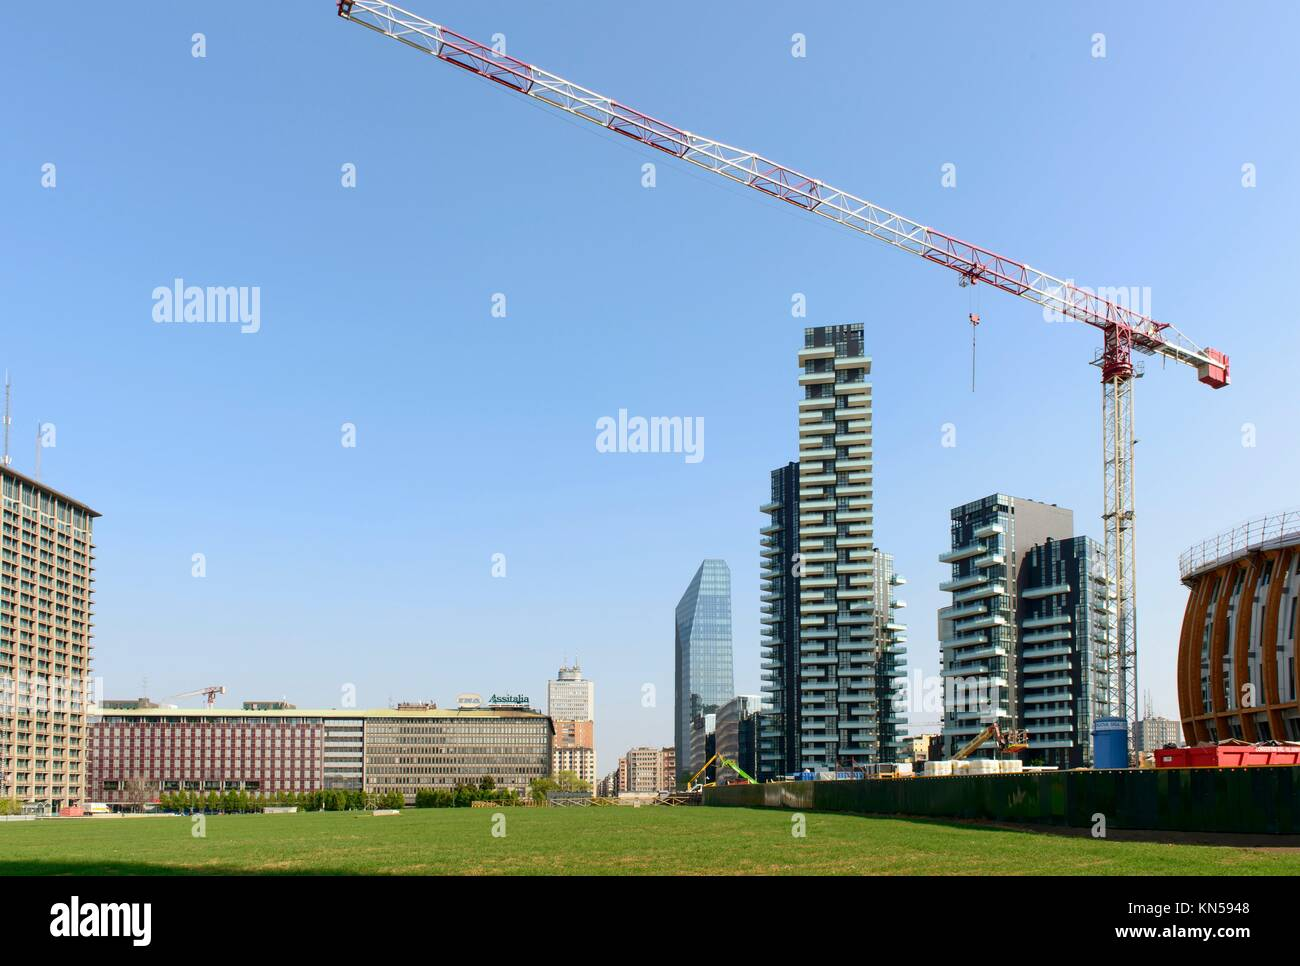 MILAN, ITALY - APRIL 11: view of the building site cranes and of tall buildings at business hub prospecting on the - Stock Image